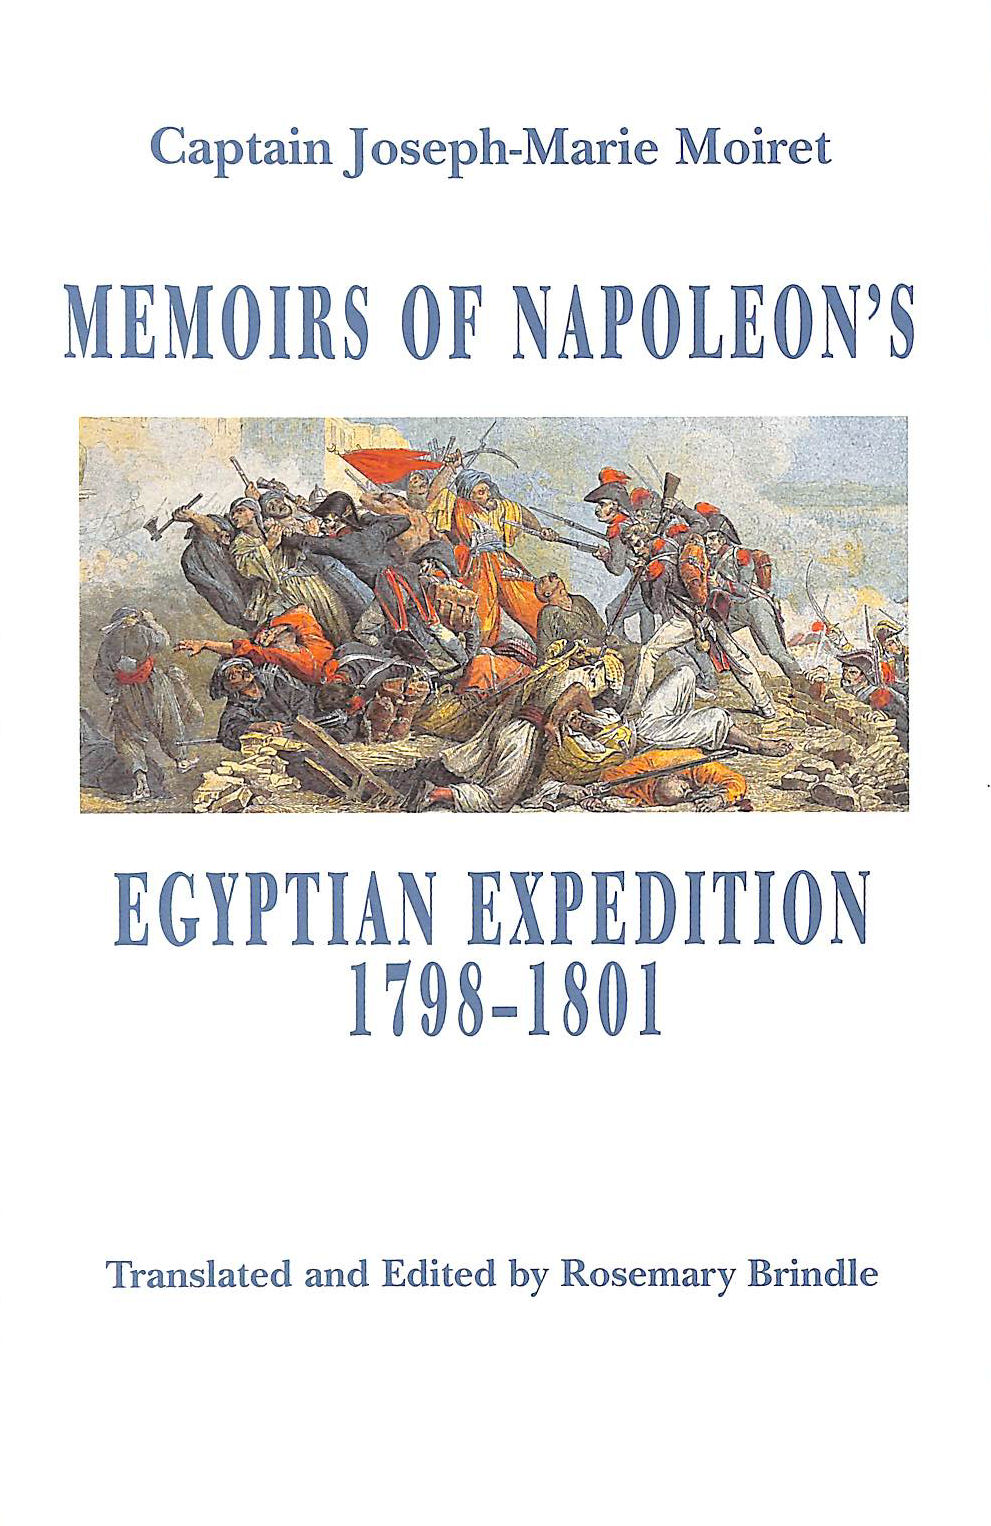 Image for Memoirs of Napoleon's Egyptian Expedition, 1798-1801